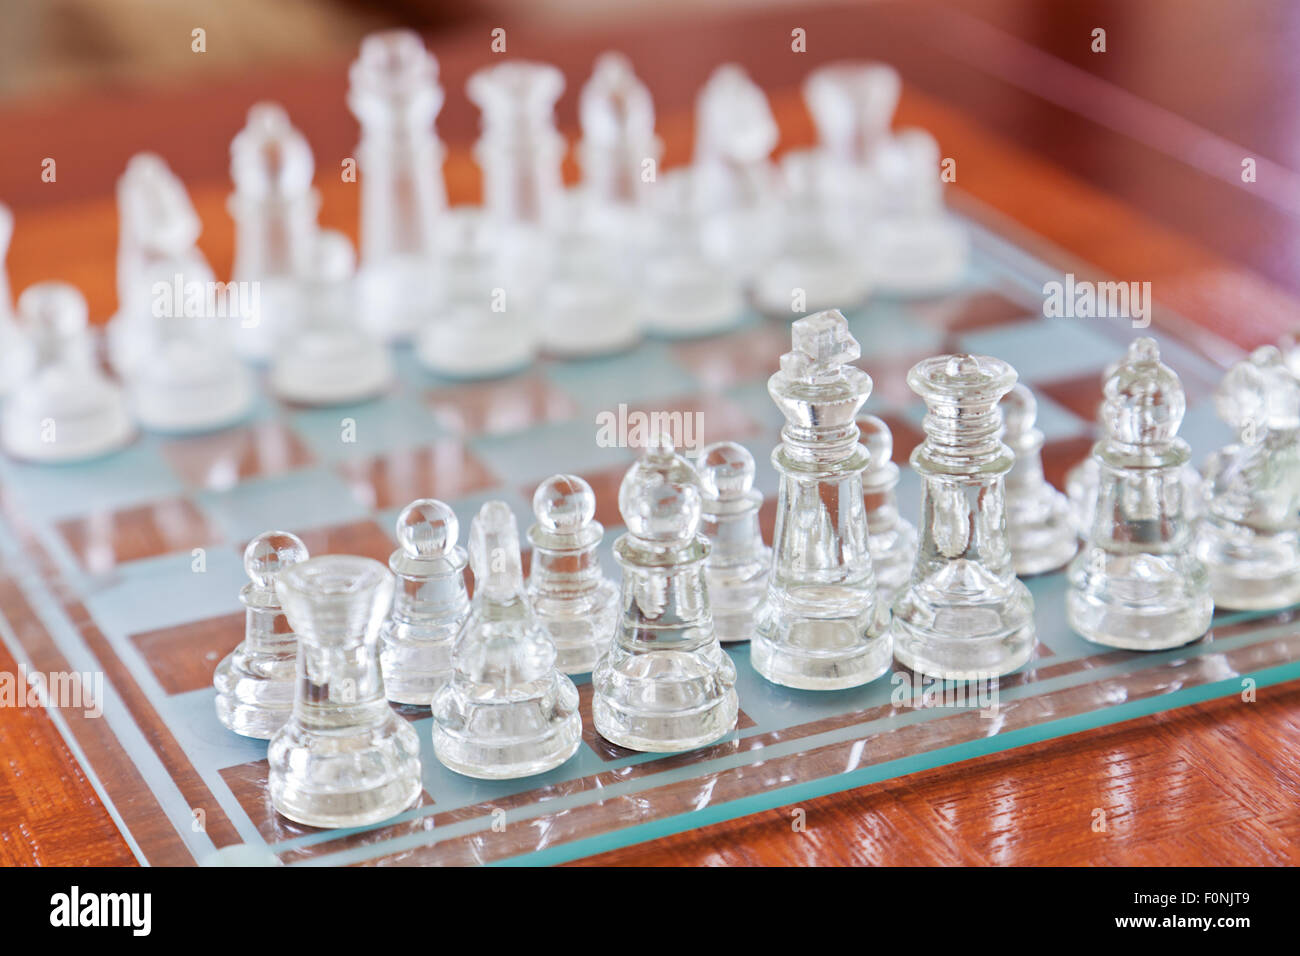 Échecs de verre Photo Stock